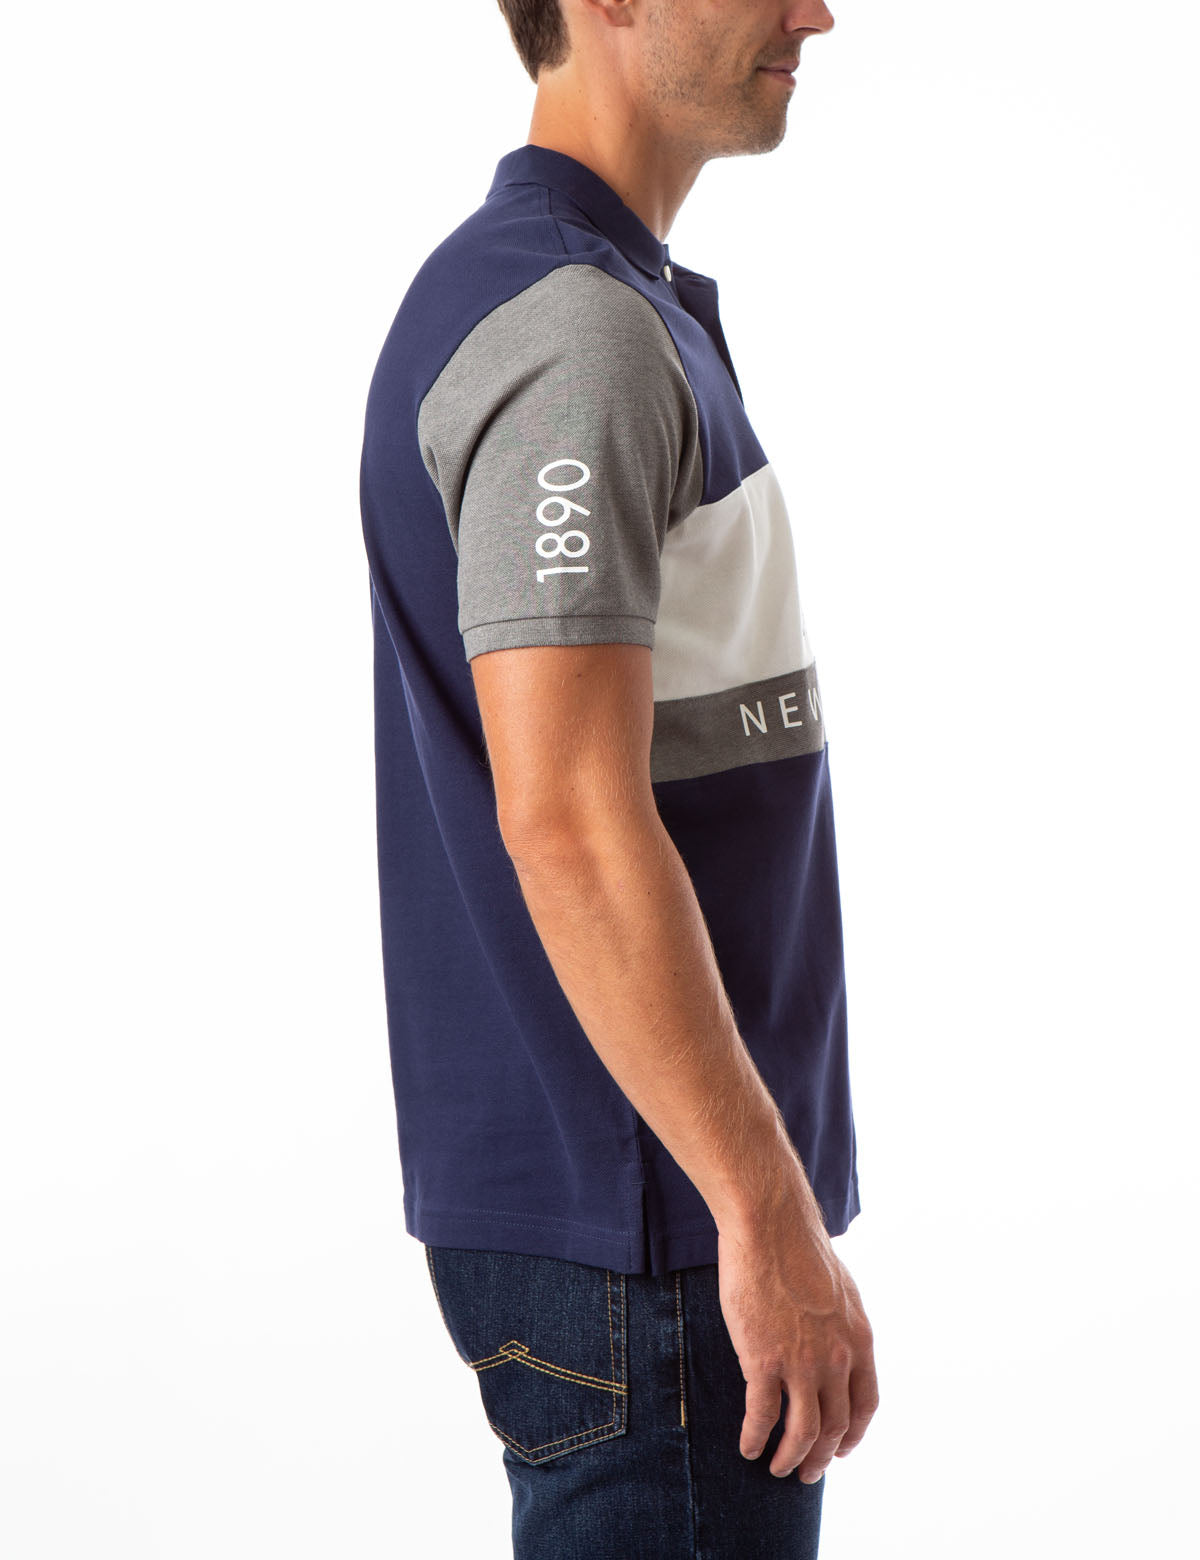 NYC COLORBLOCK CHEST STRIPE POLO SHIRT - U.S. Polo Assn.